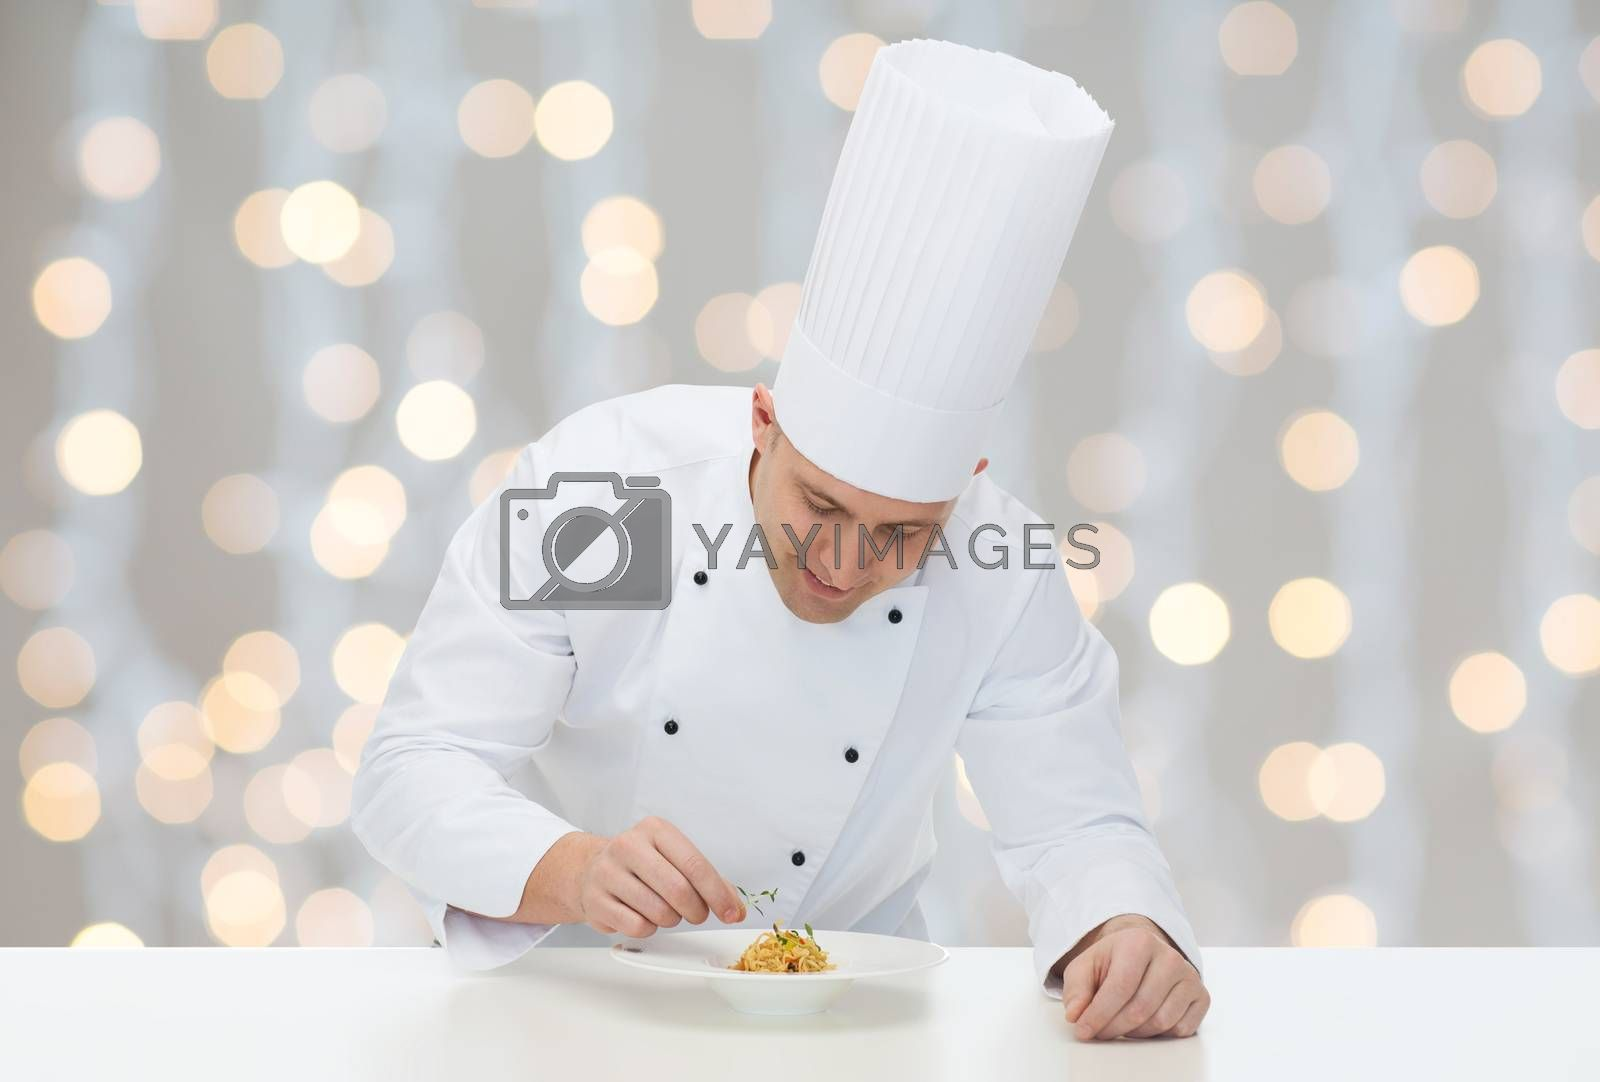 cooking, profession, haute cuisine, food and people concept - happy male chef cook decorating dish over christmas holidays lights background